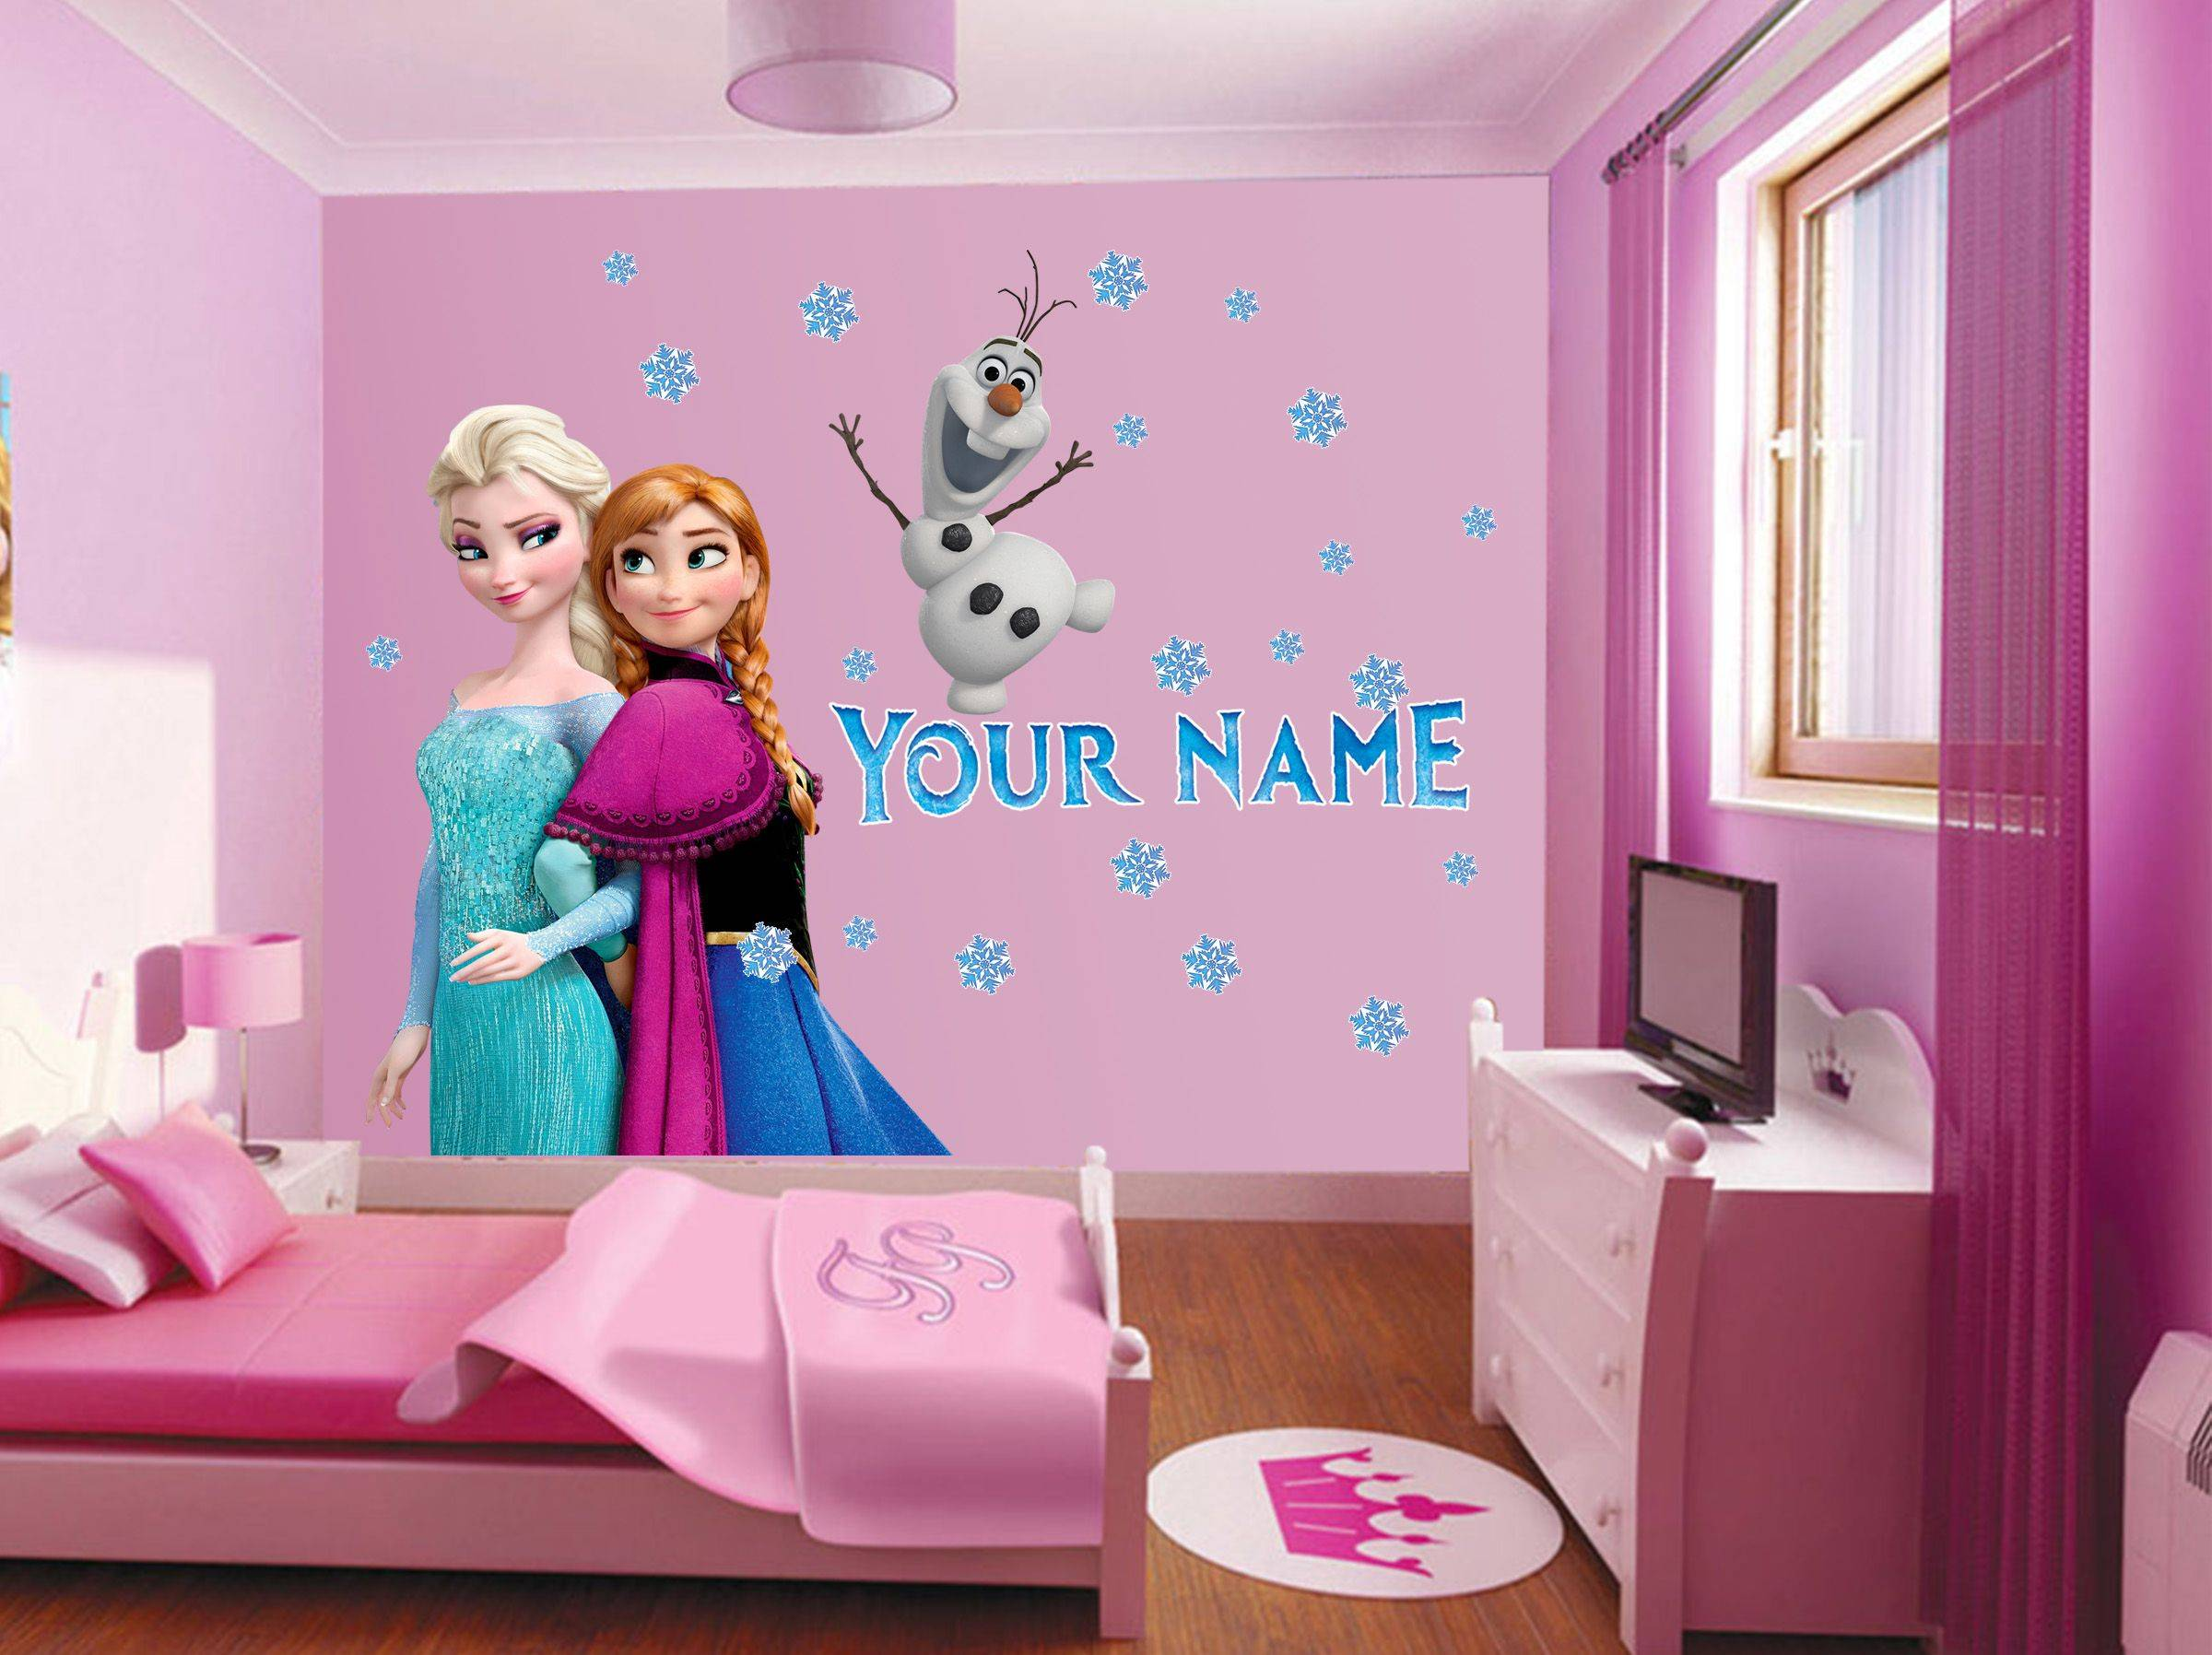 frozen wall decor images disney growth chart bedroom by elsa olaf personalized custom name room ideas themed baby inspired diy and anna accessories accessory set decorating little